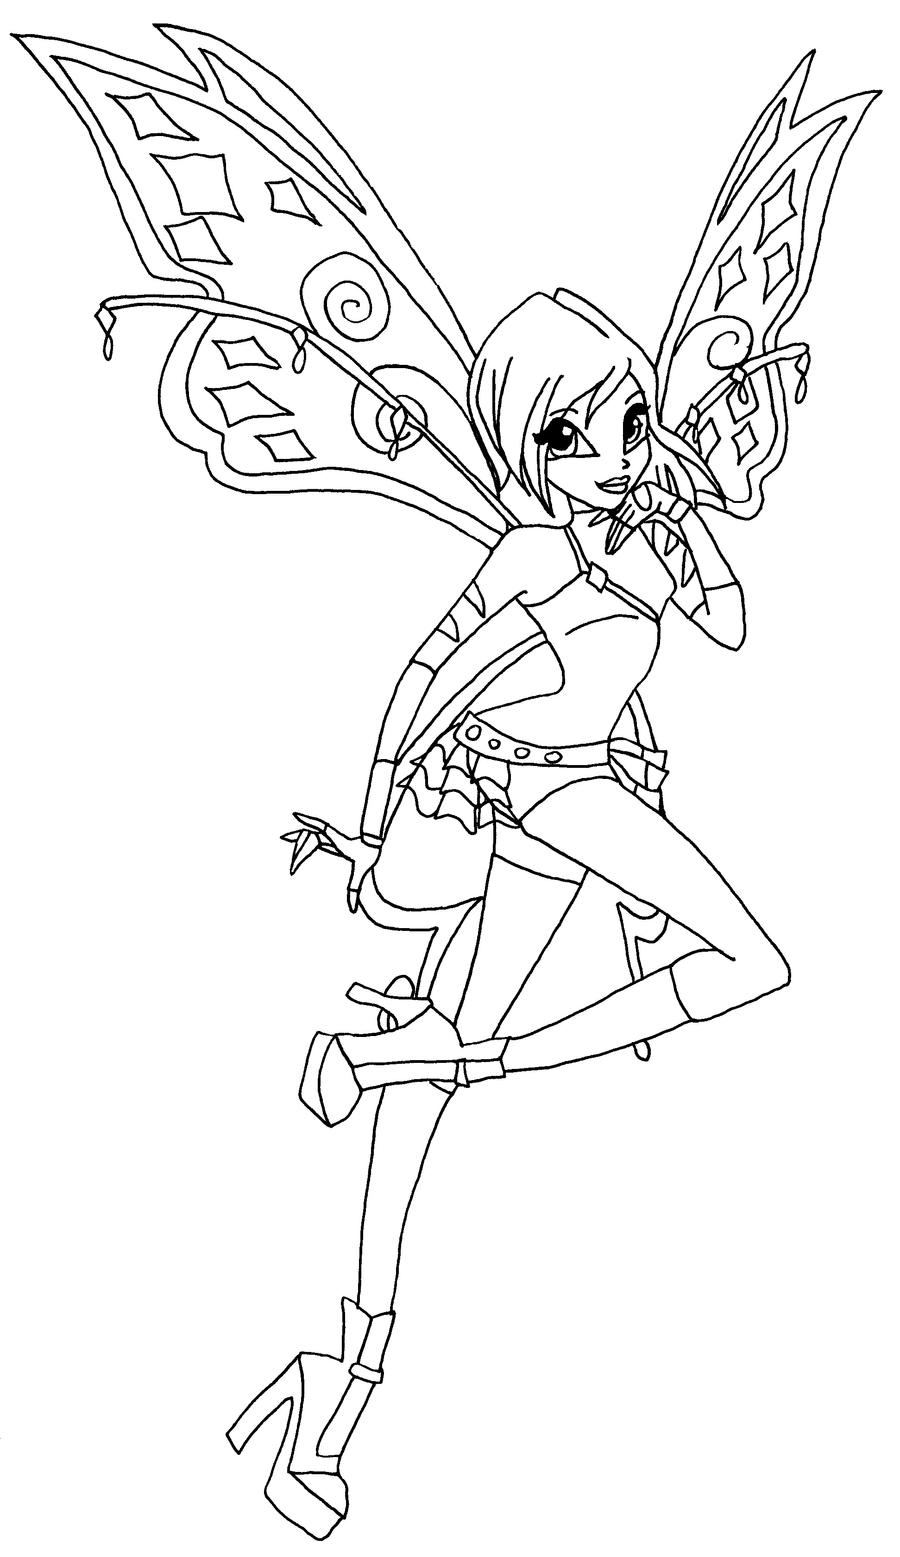 Winx Club Believix Coloring Pages - 160.0KB